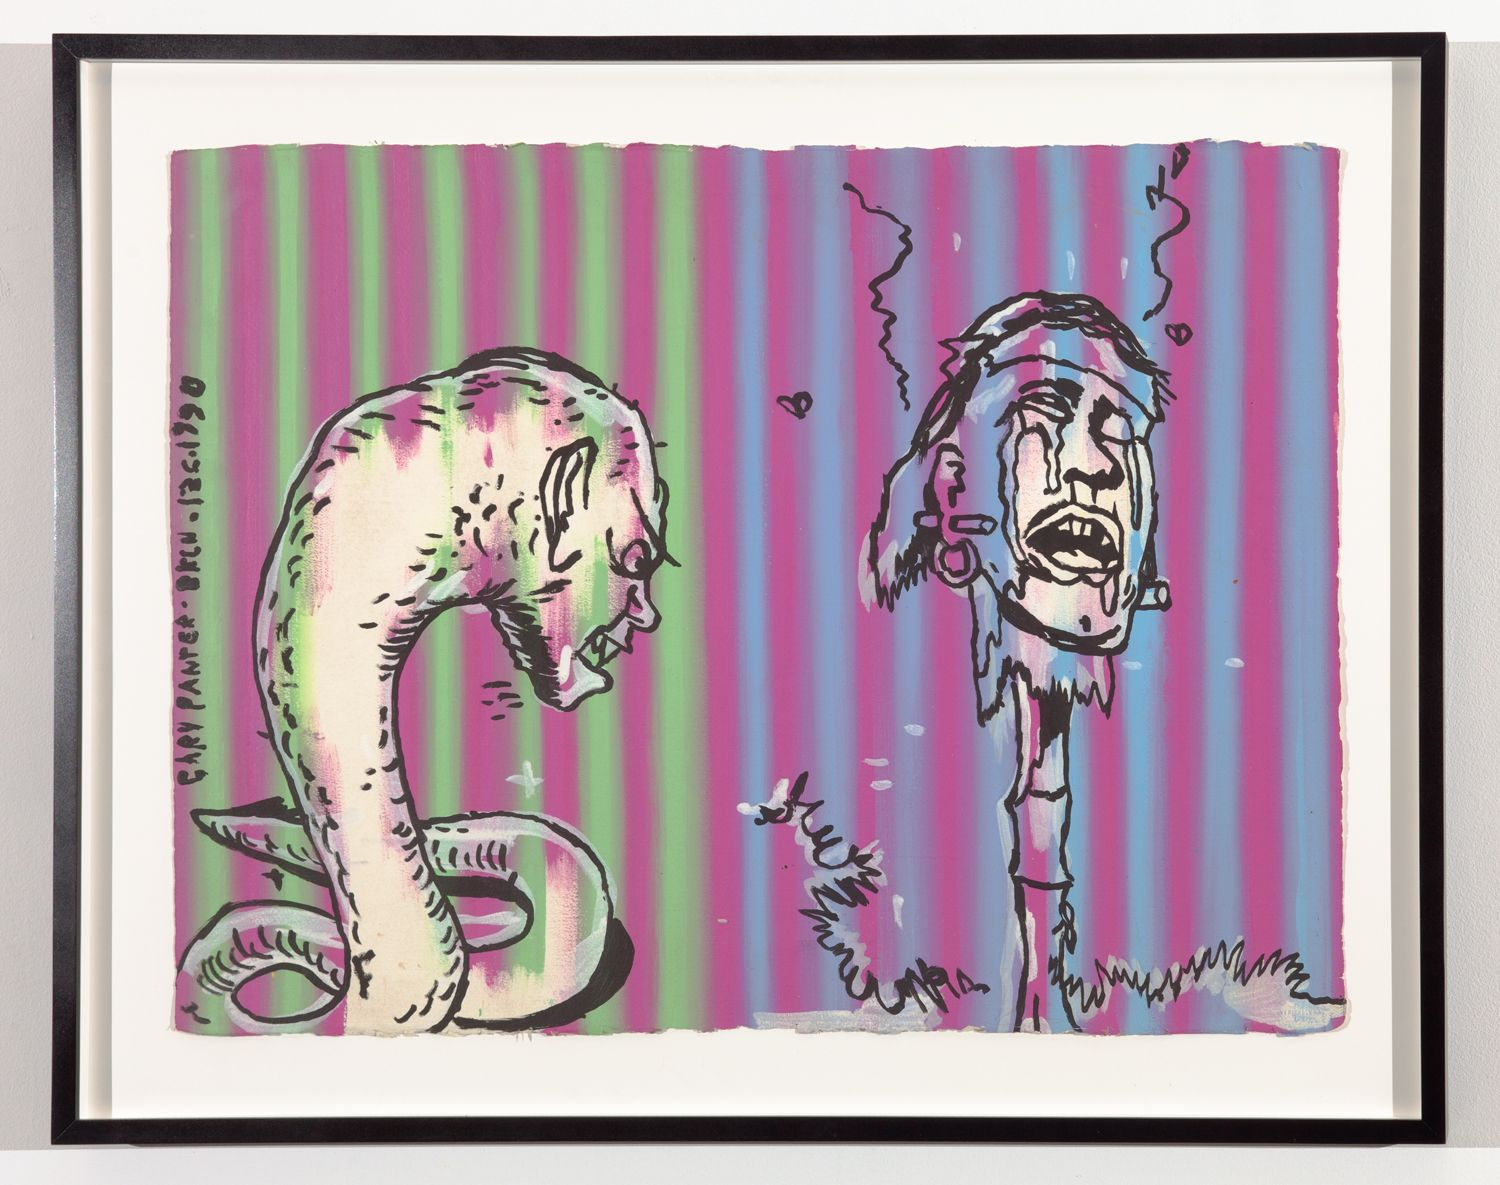 GARY PANTER, Untitled (Carne), 1990